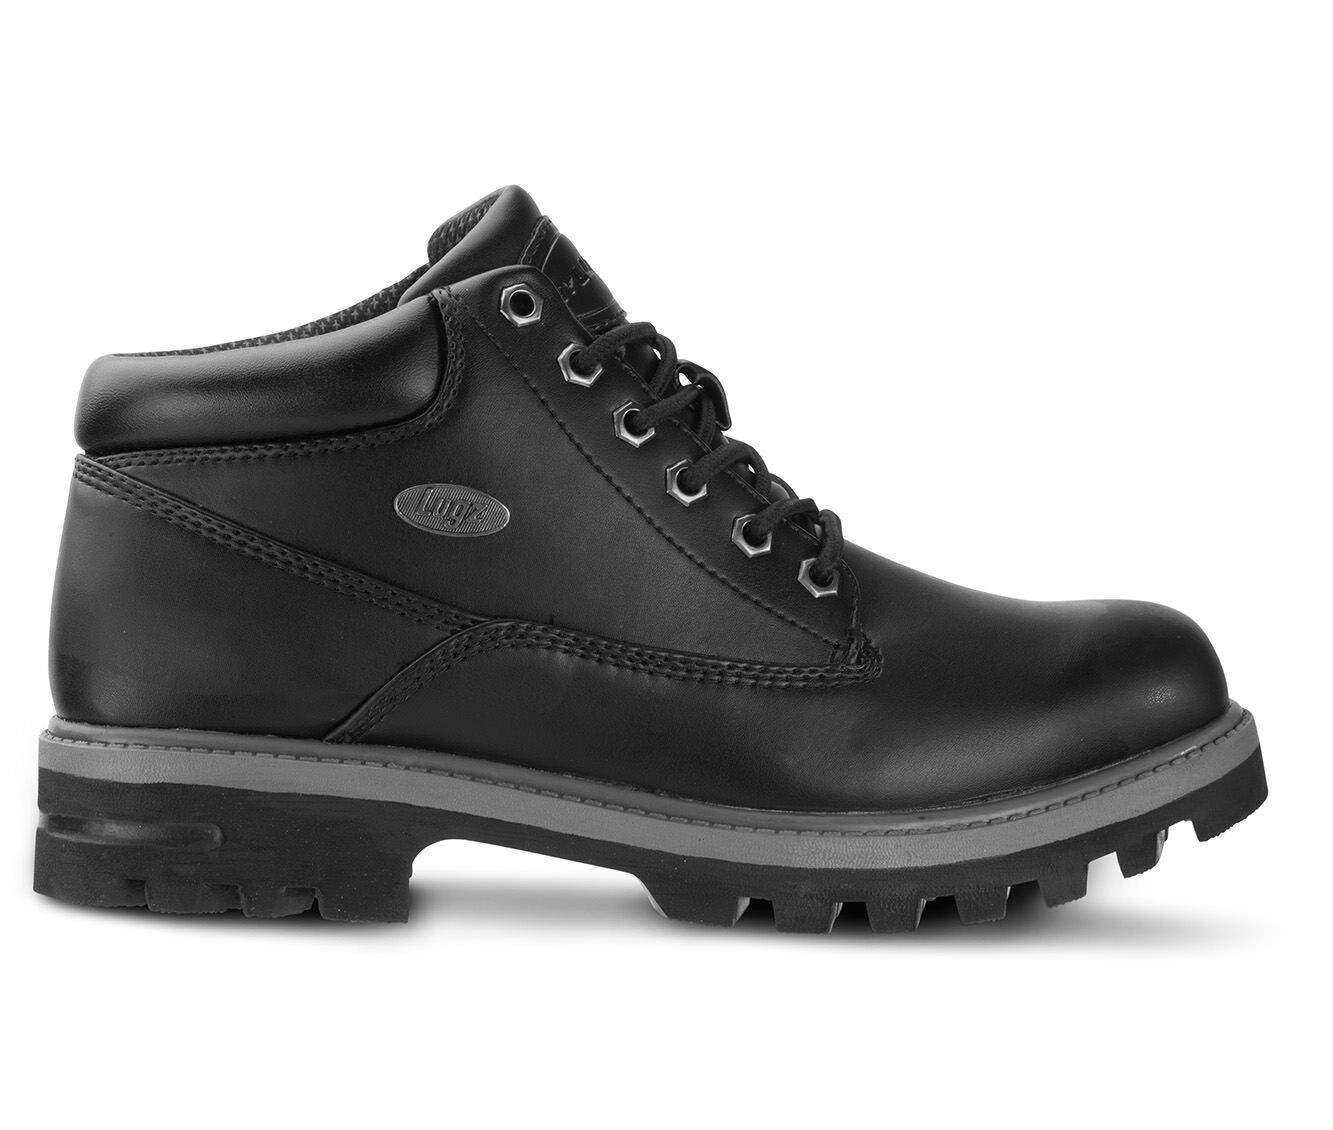 buy discount Men's Lugz Empire Water Resistant Boots Black/Charcoal